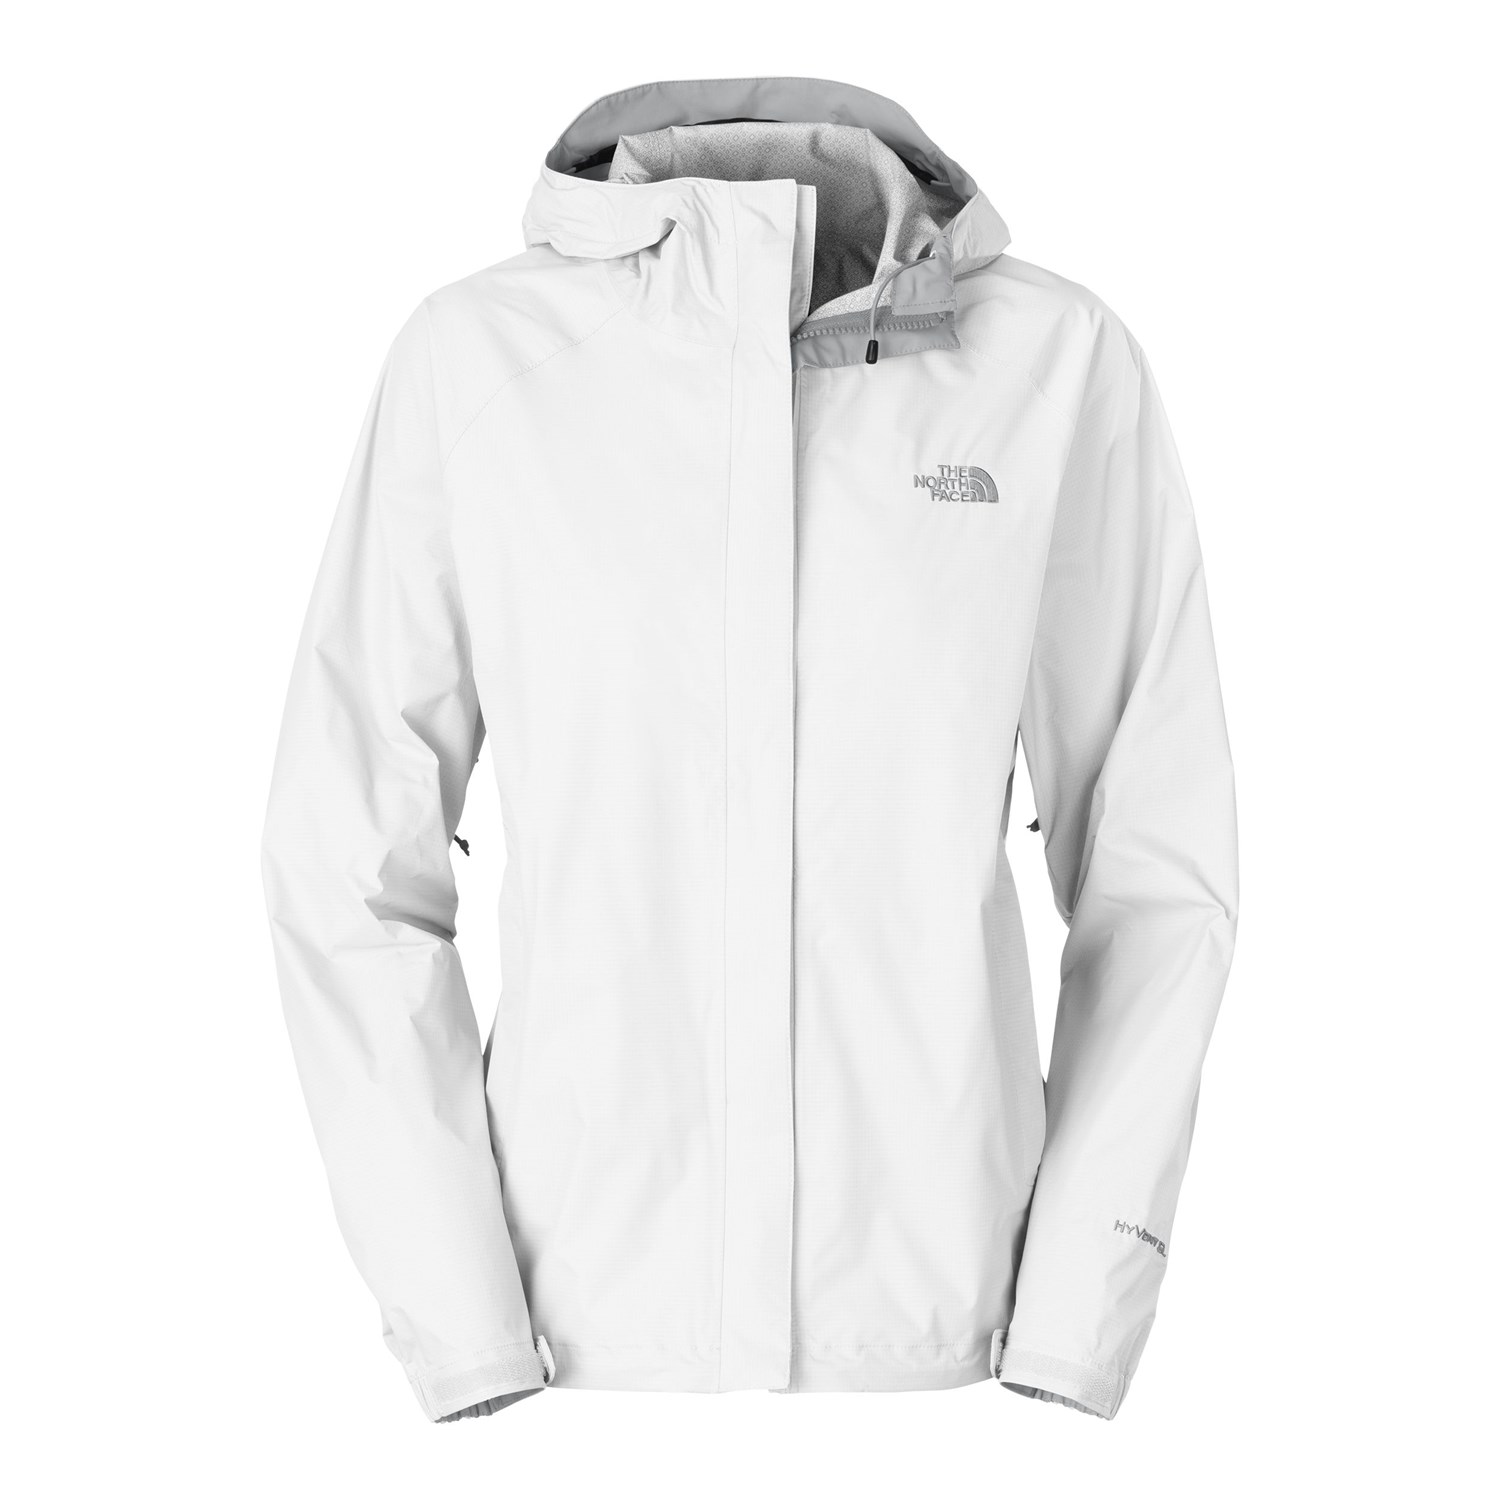 ca030cf66 The North Face Venture Jacket - Women's | evo